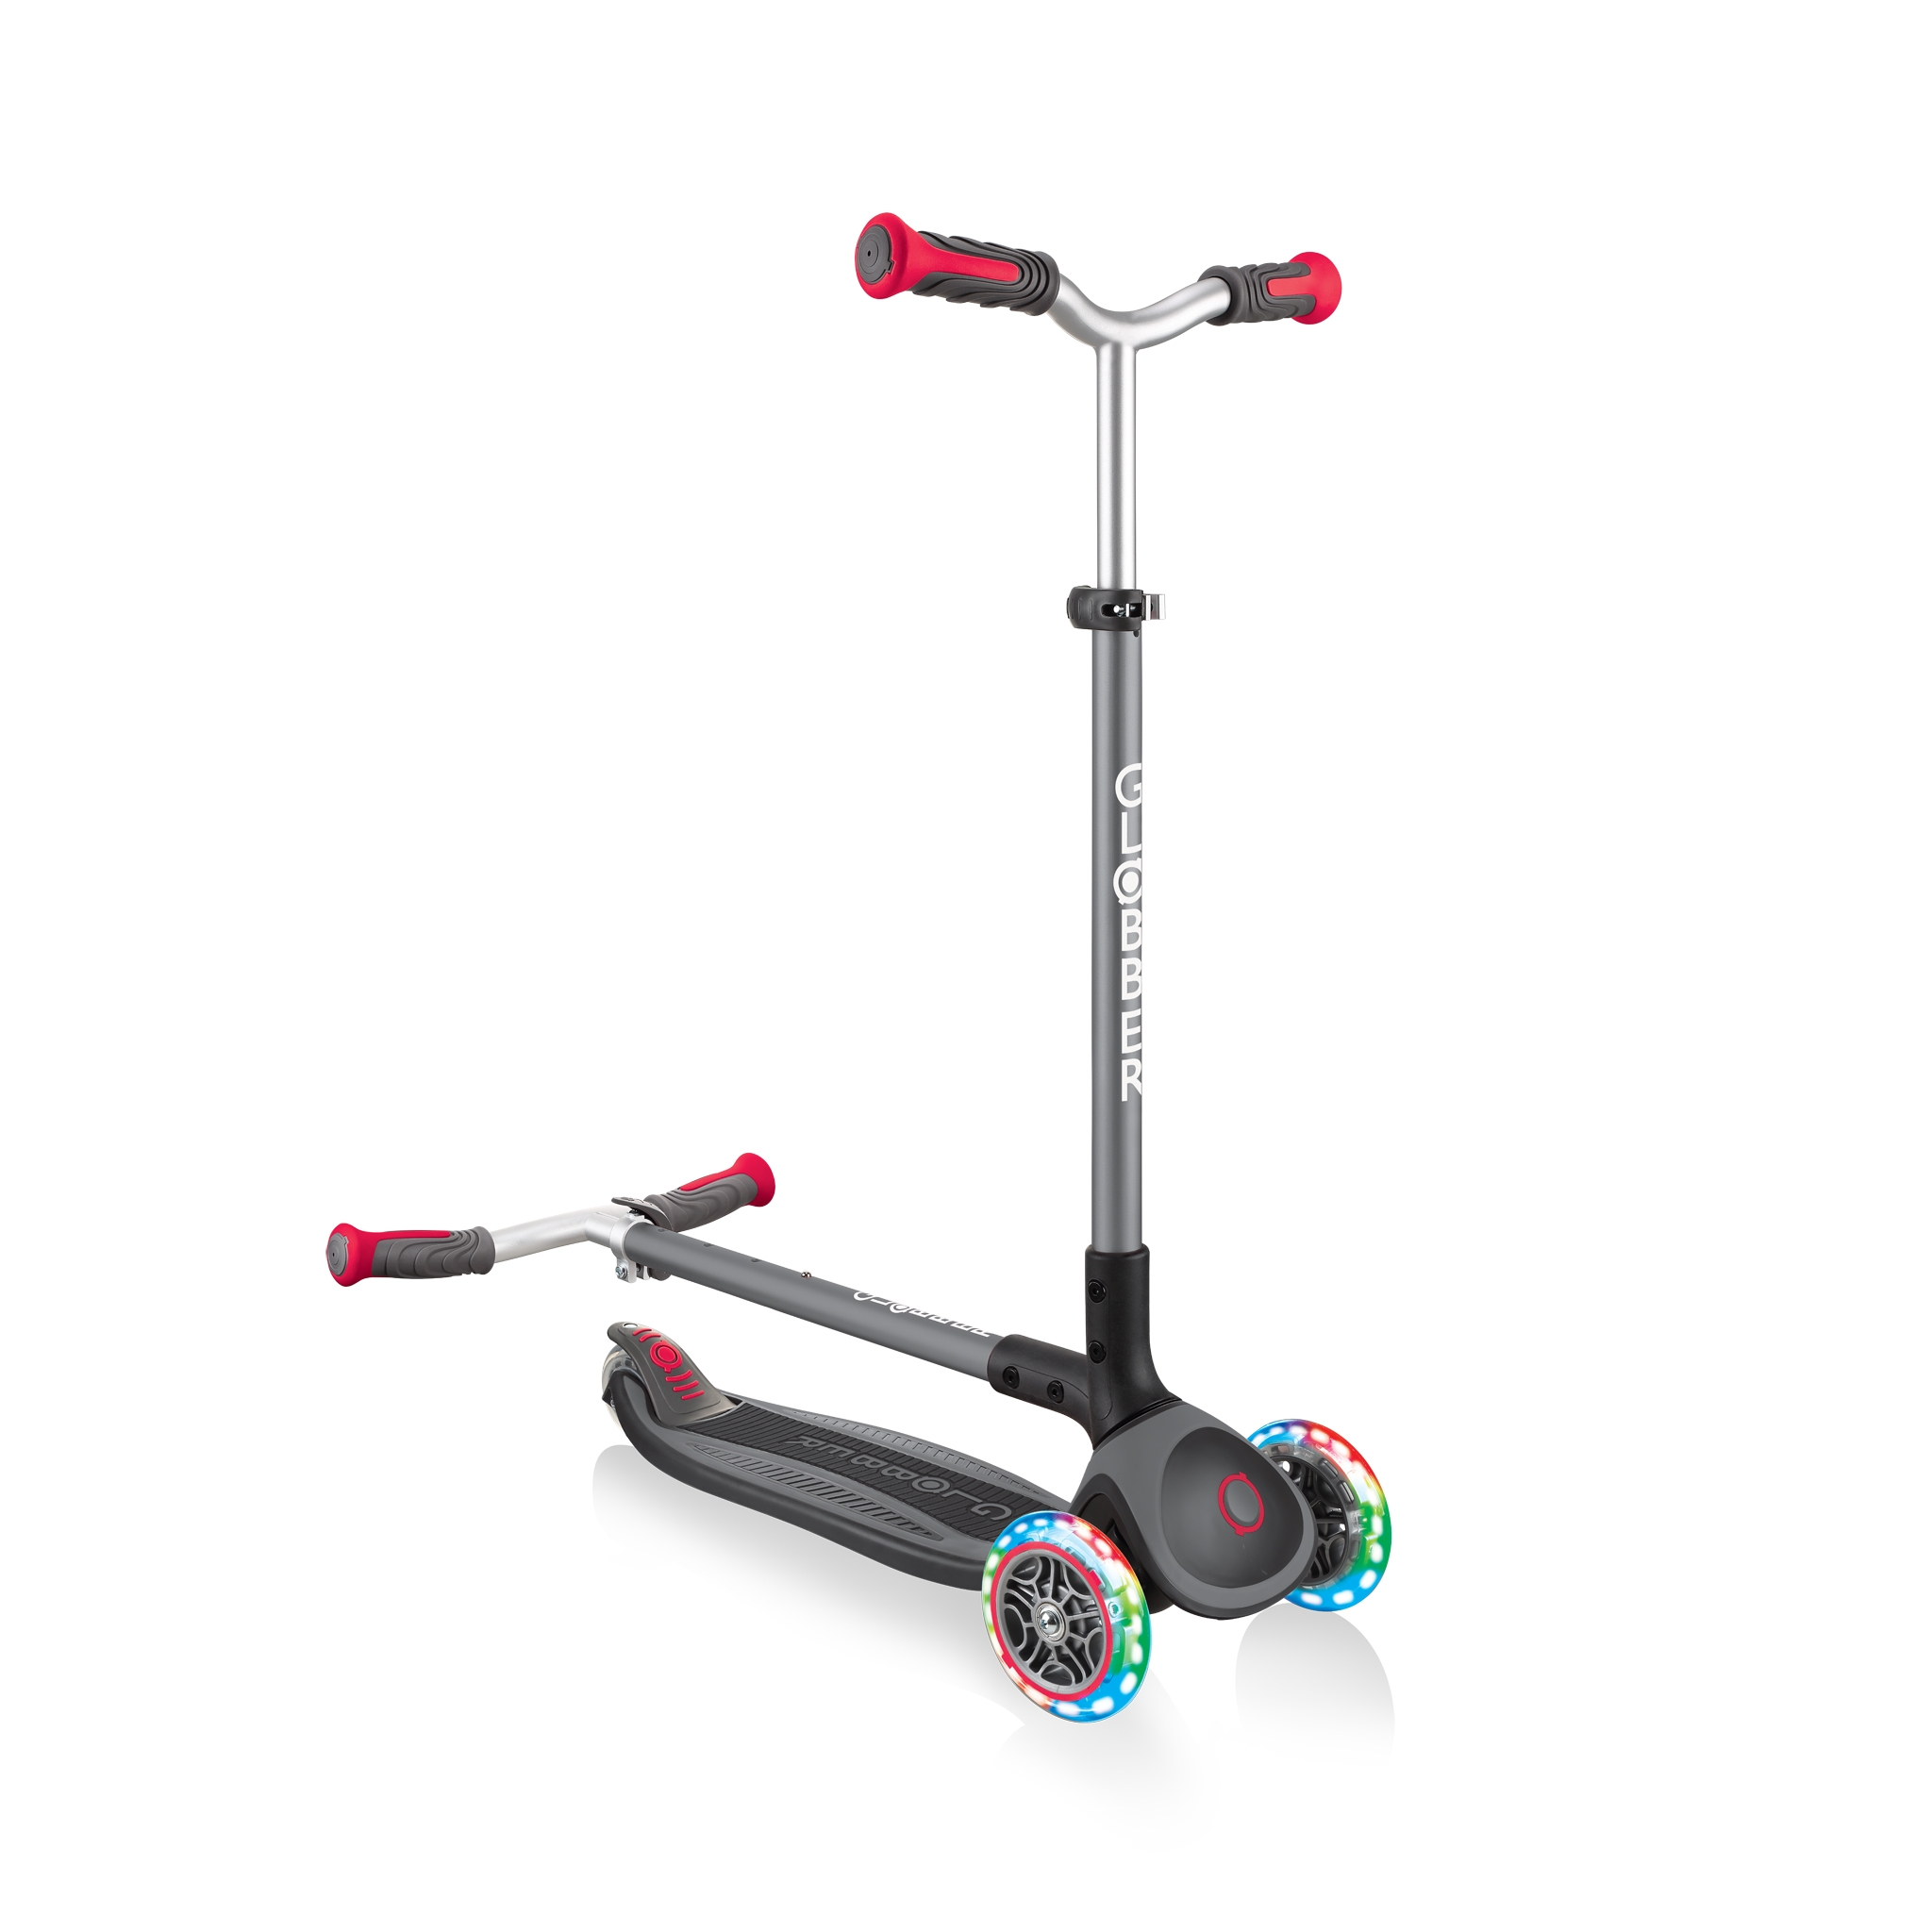 Globber-MASTER-LIGHTS-convenient-foldable-3-wheel-light-up-scooter-for-kids-with-patented-folding-system_black-red